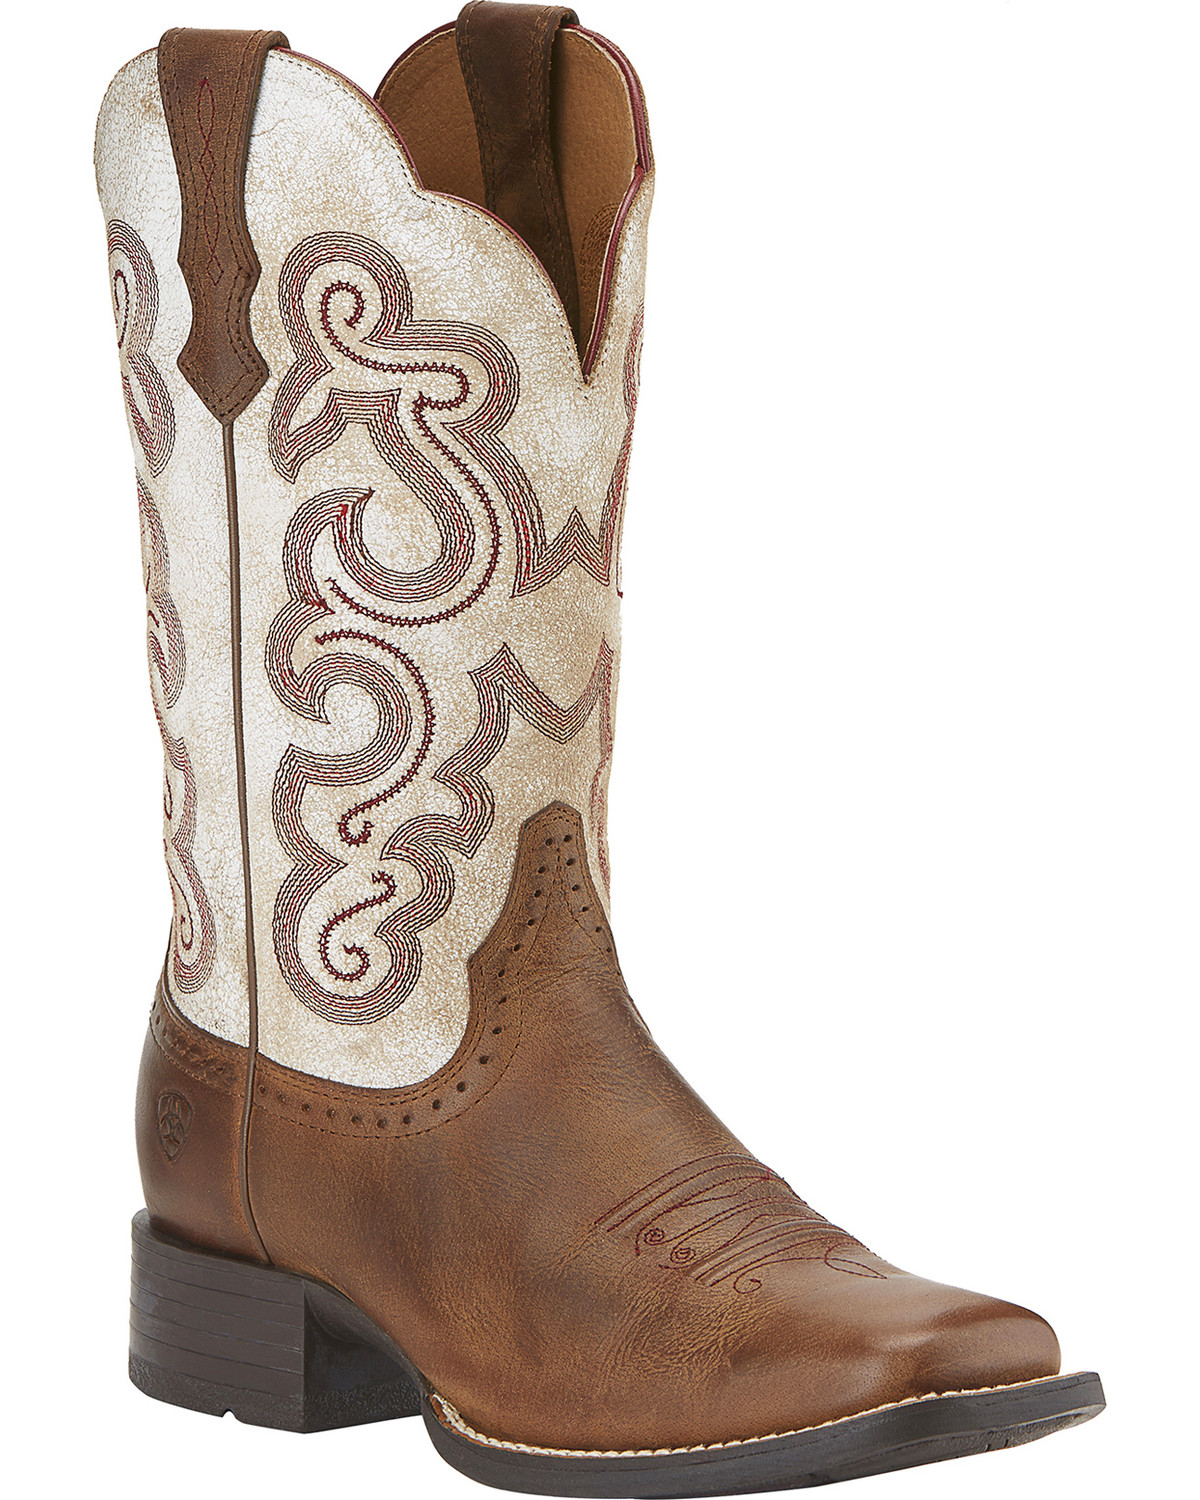 c9f526c5af8 Ariat Women's Quickdraw Western Boots